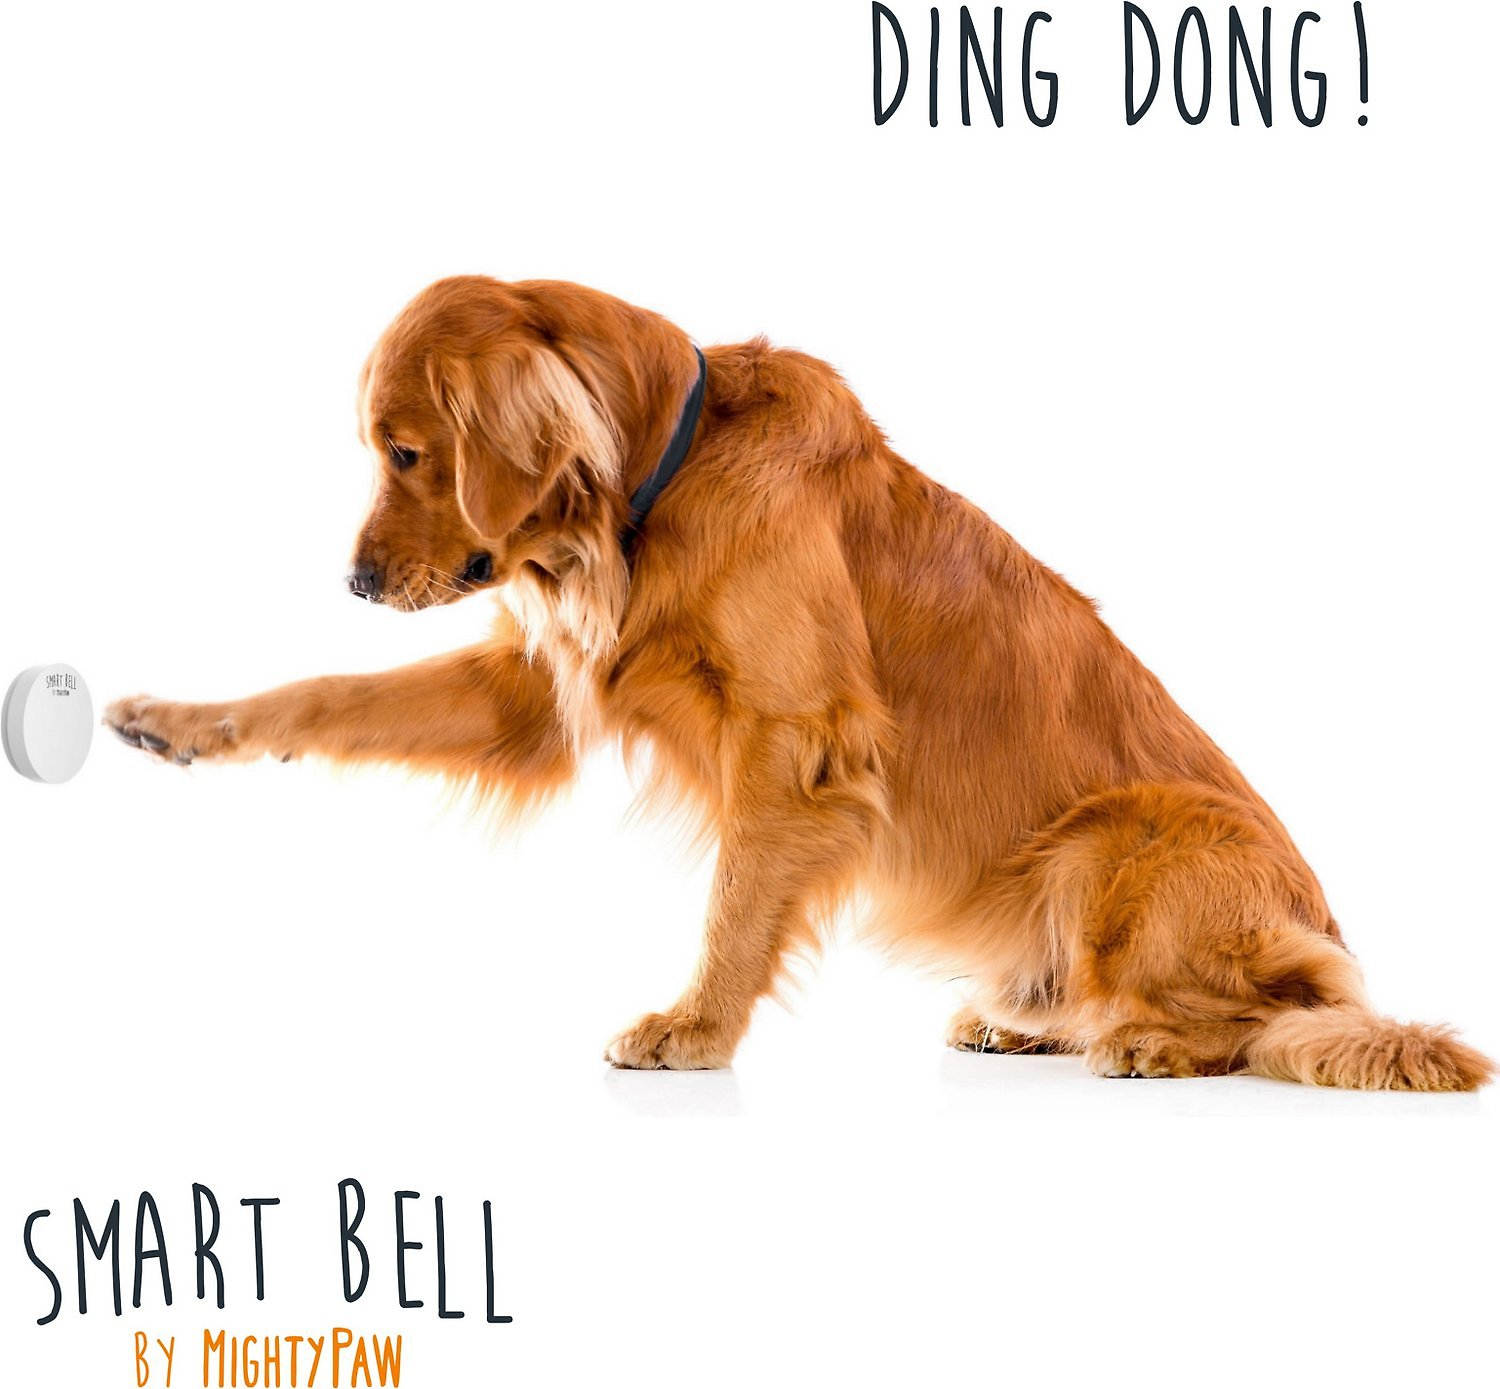 Mighty Paw Smart Bell 20 Potty Training Dog Doorbell White 1